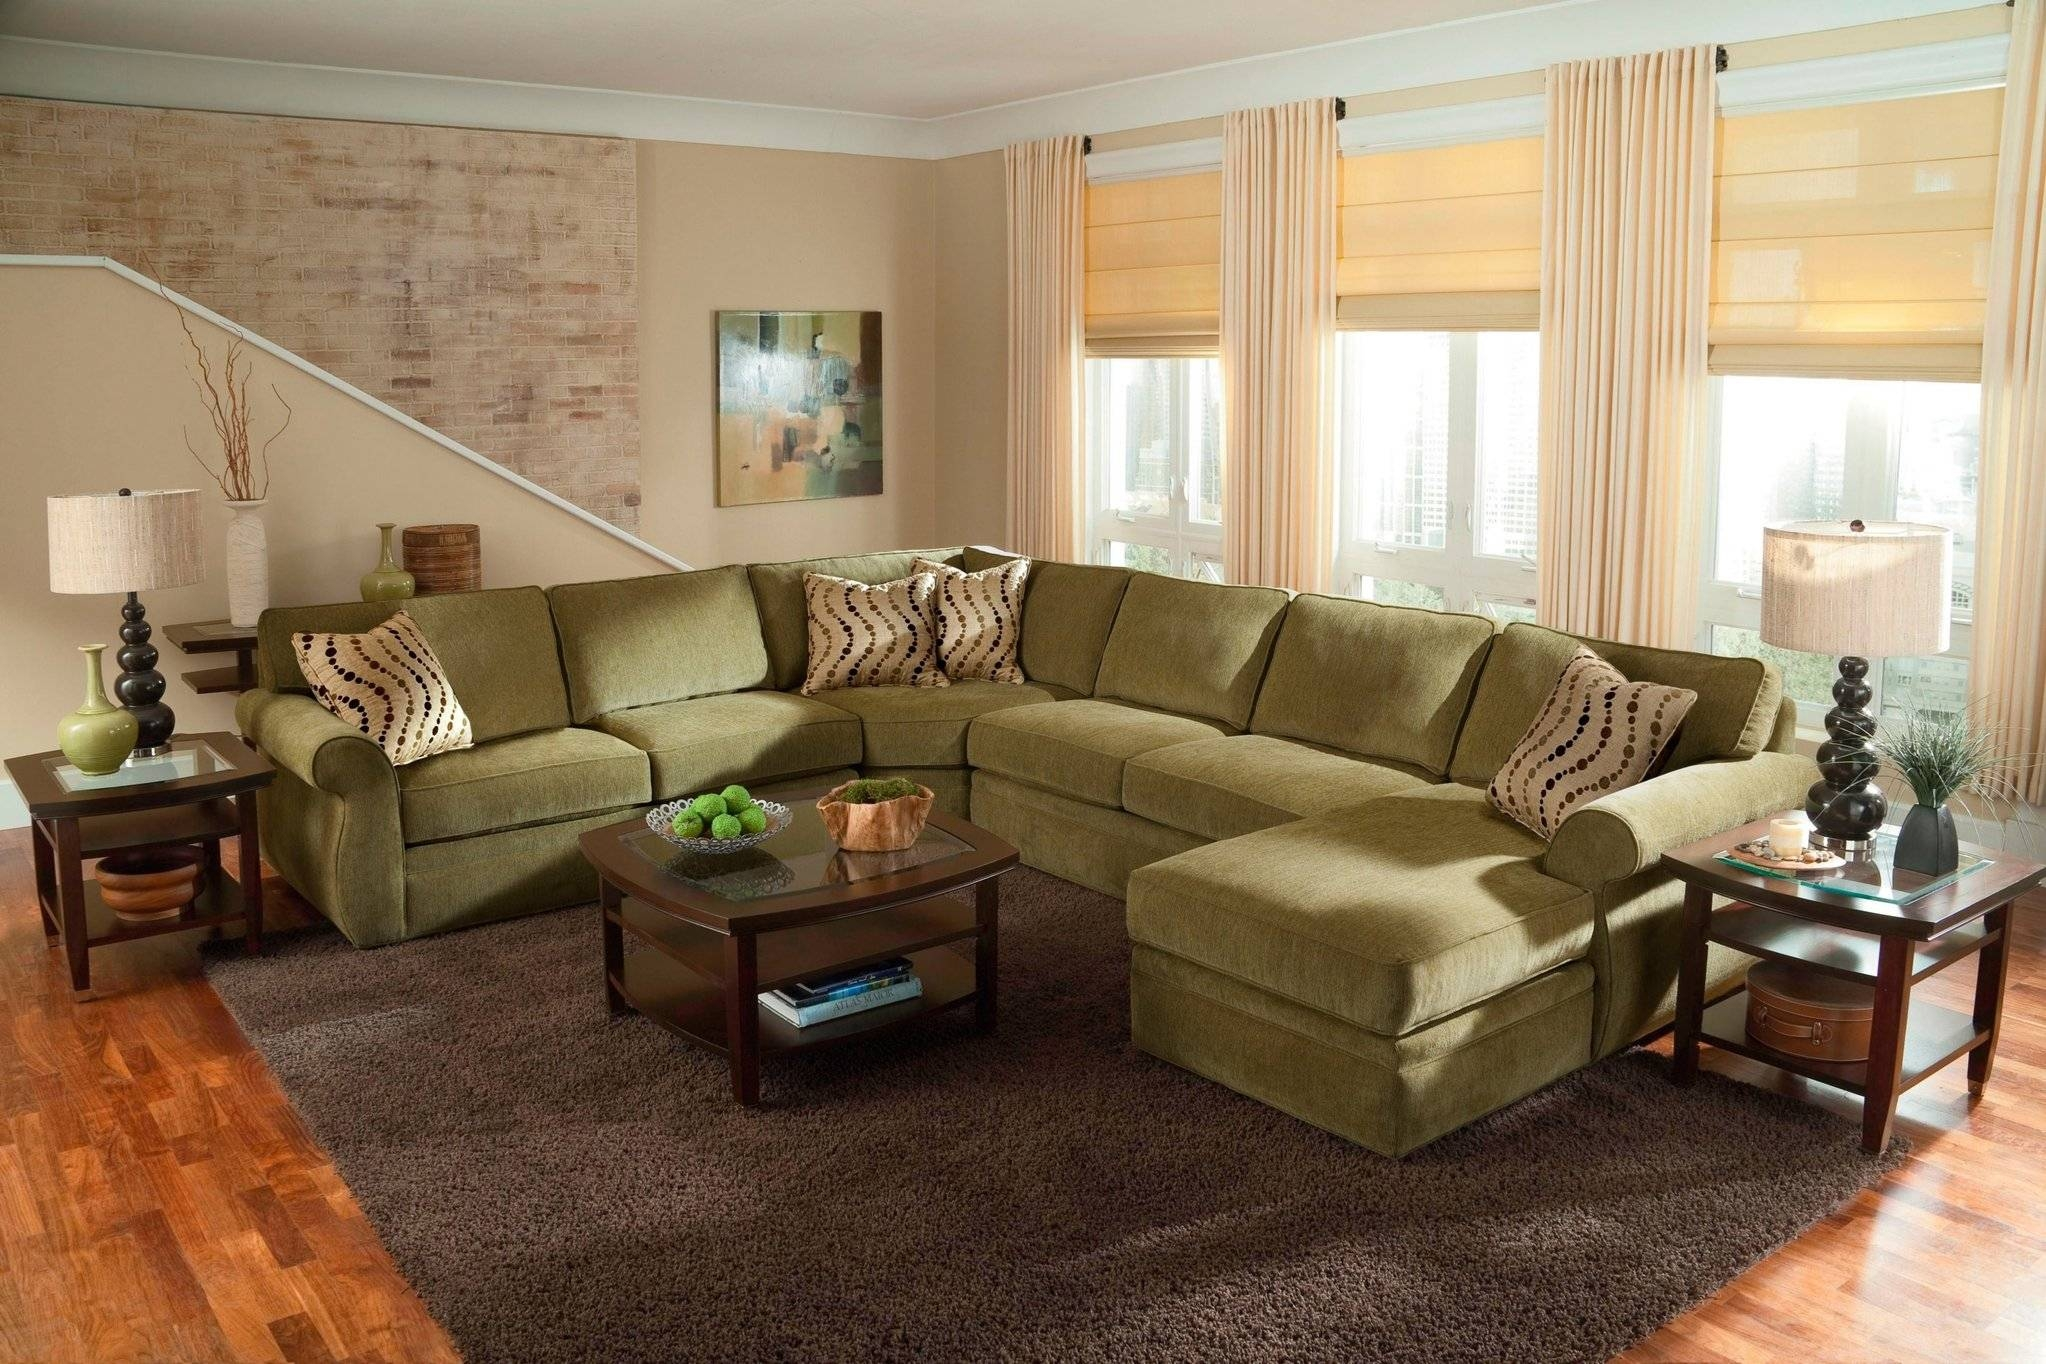 Interior: Luxury Oversized Sectional Sofa For Awesome Living Room within Sectional Sofa Ideas (Image 21 of 30)